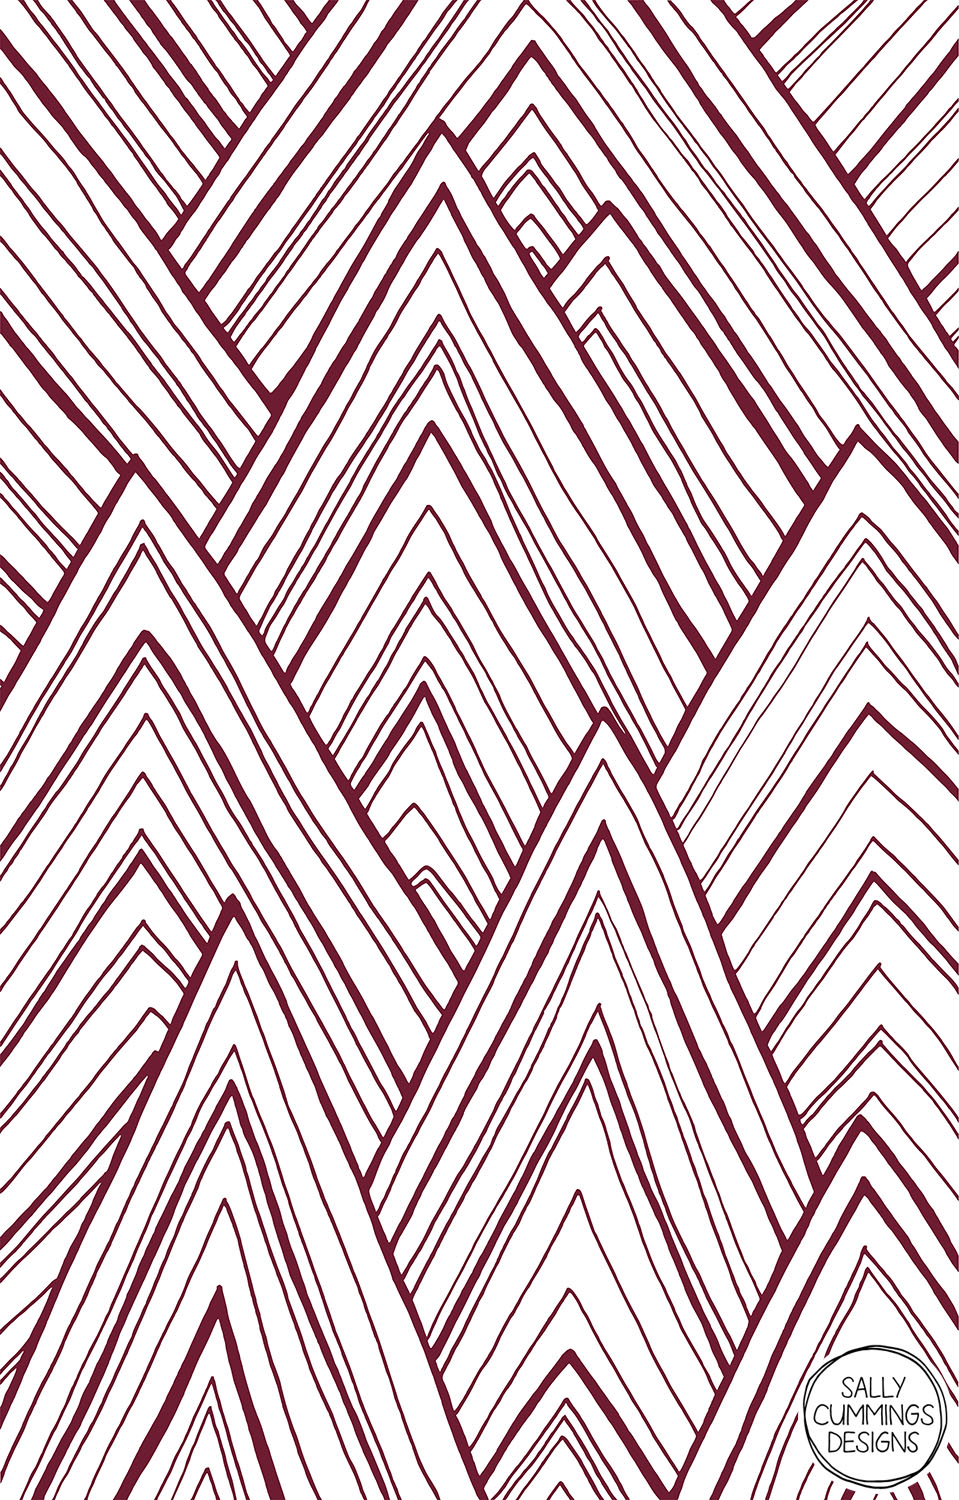 Sally Cummings Designs - Stripe Mountains (Maroon)